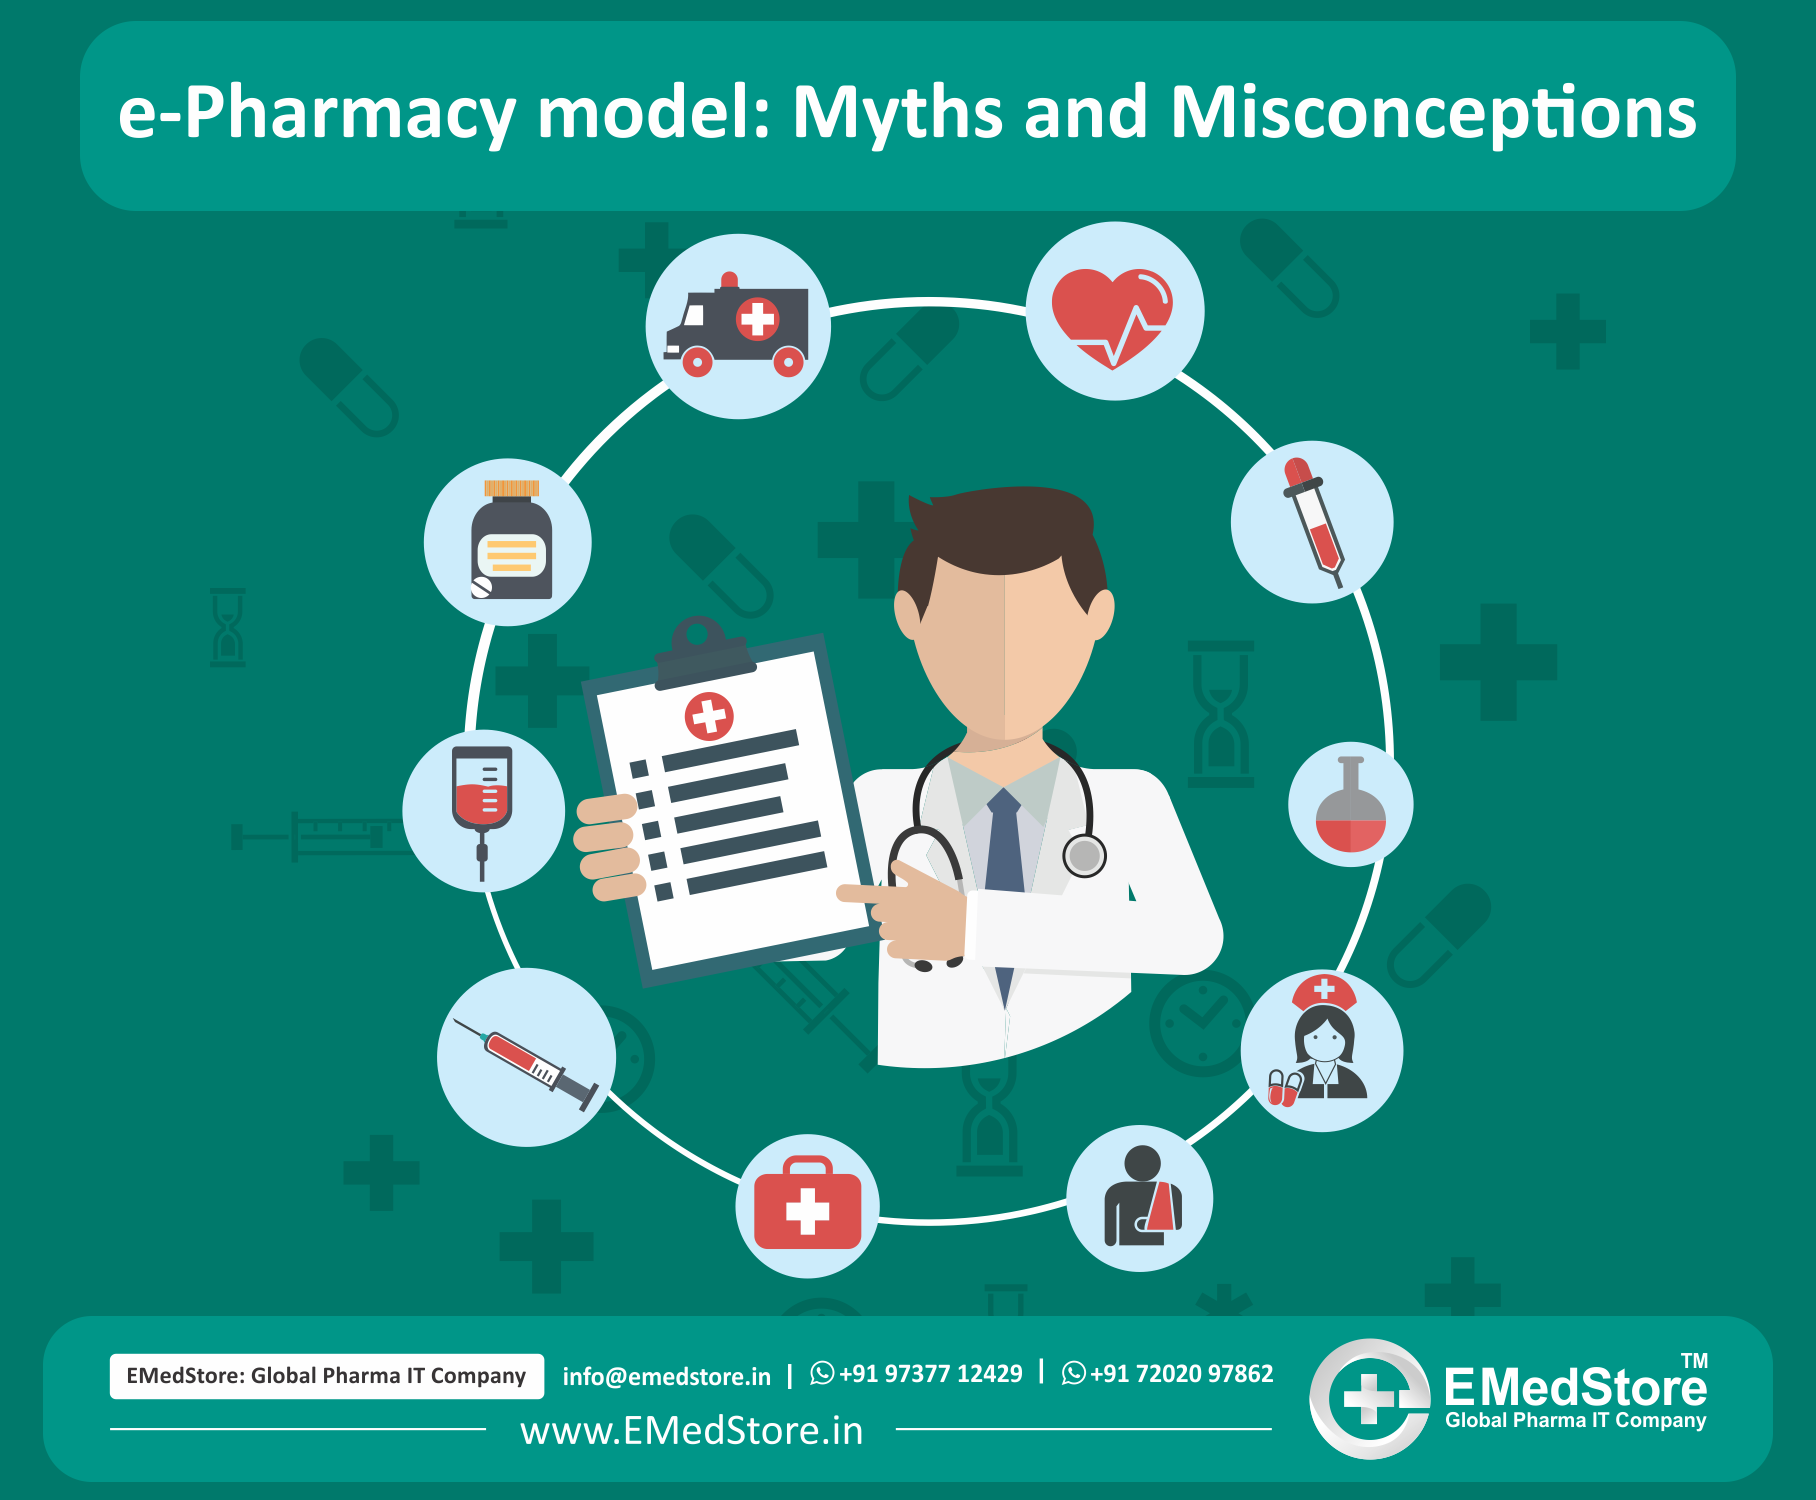 e-Pharmacy model: Myths and Misconceptions